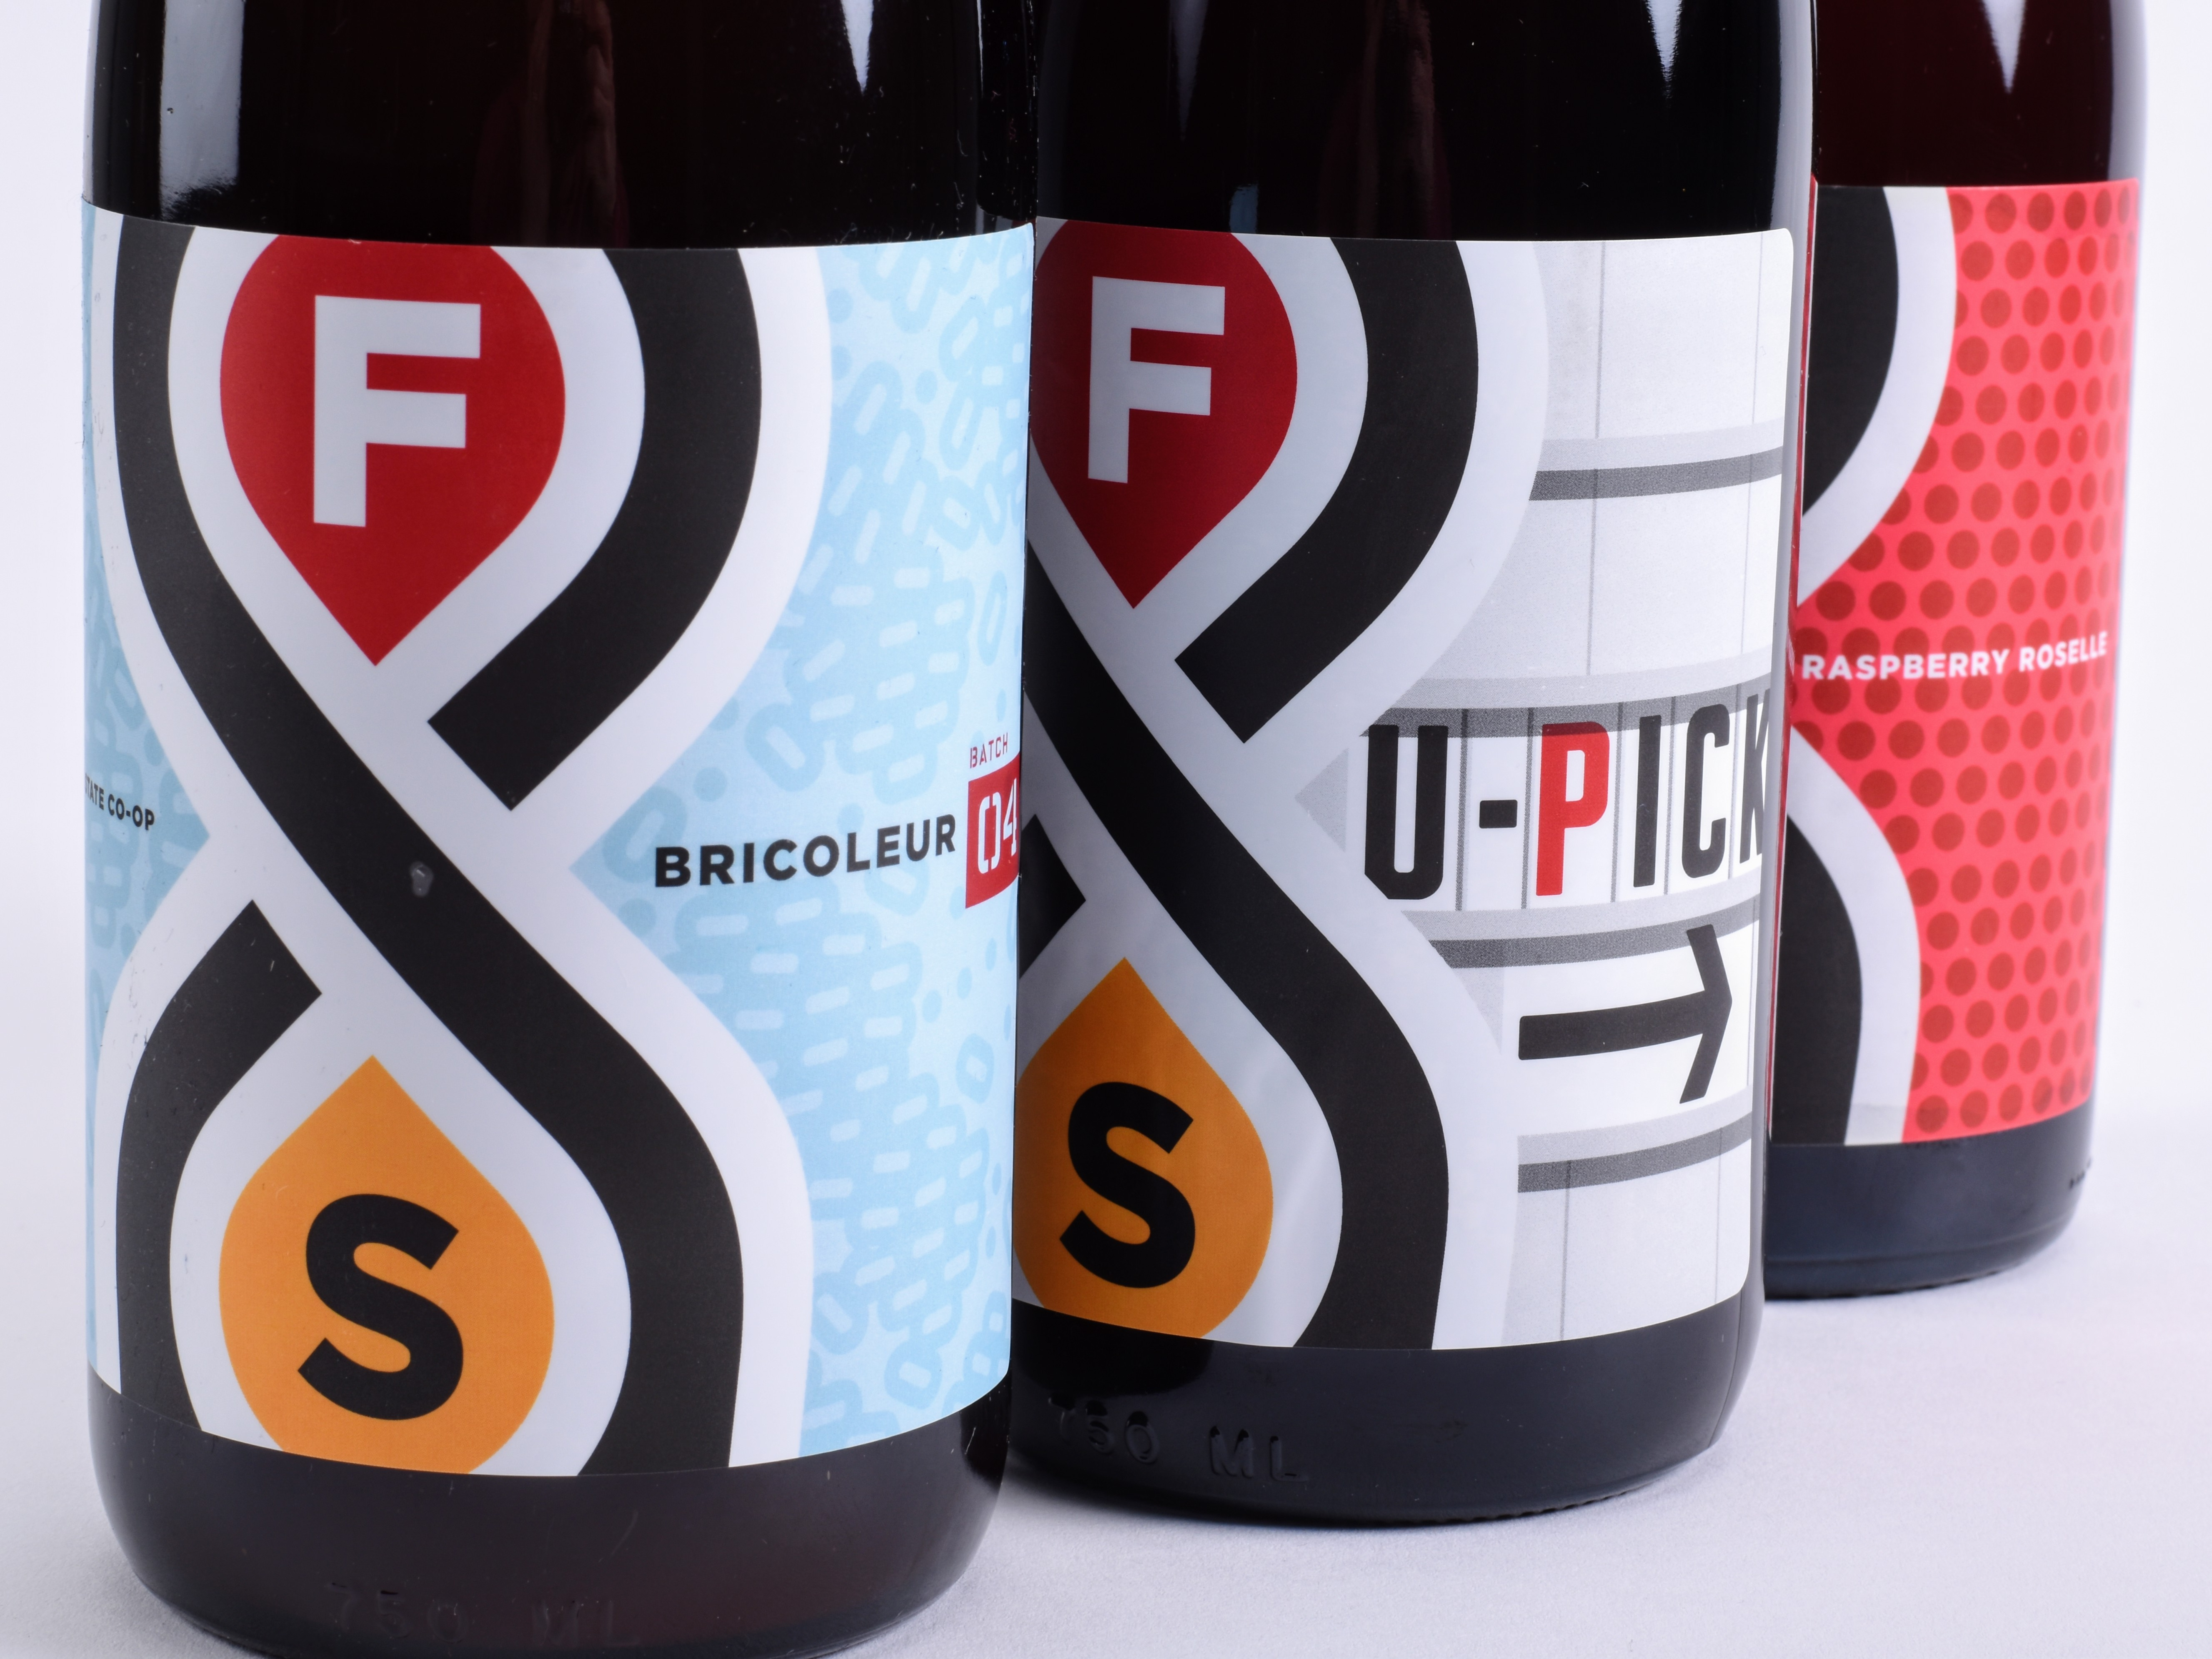 Fair State Bricoleur #4, U-Pick, and Raspberry Roselle // Photo courtesy of Fair State Brewing Cooperative